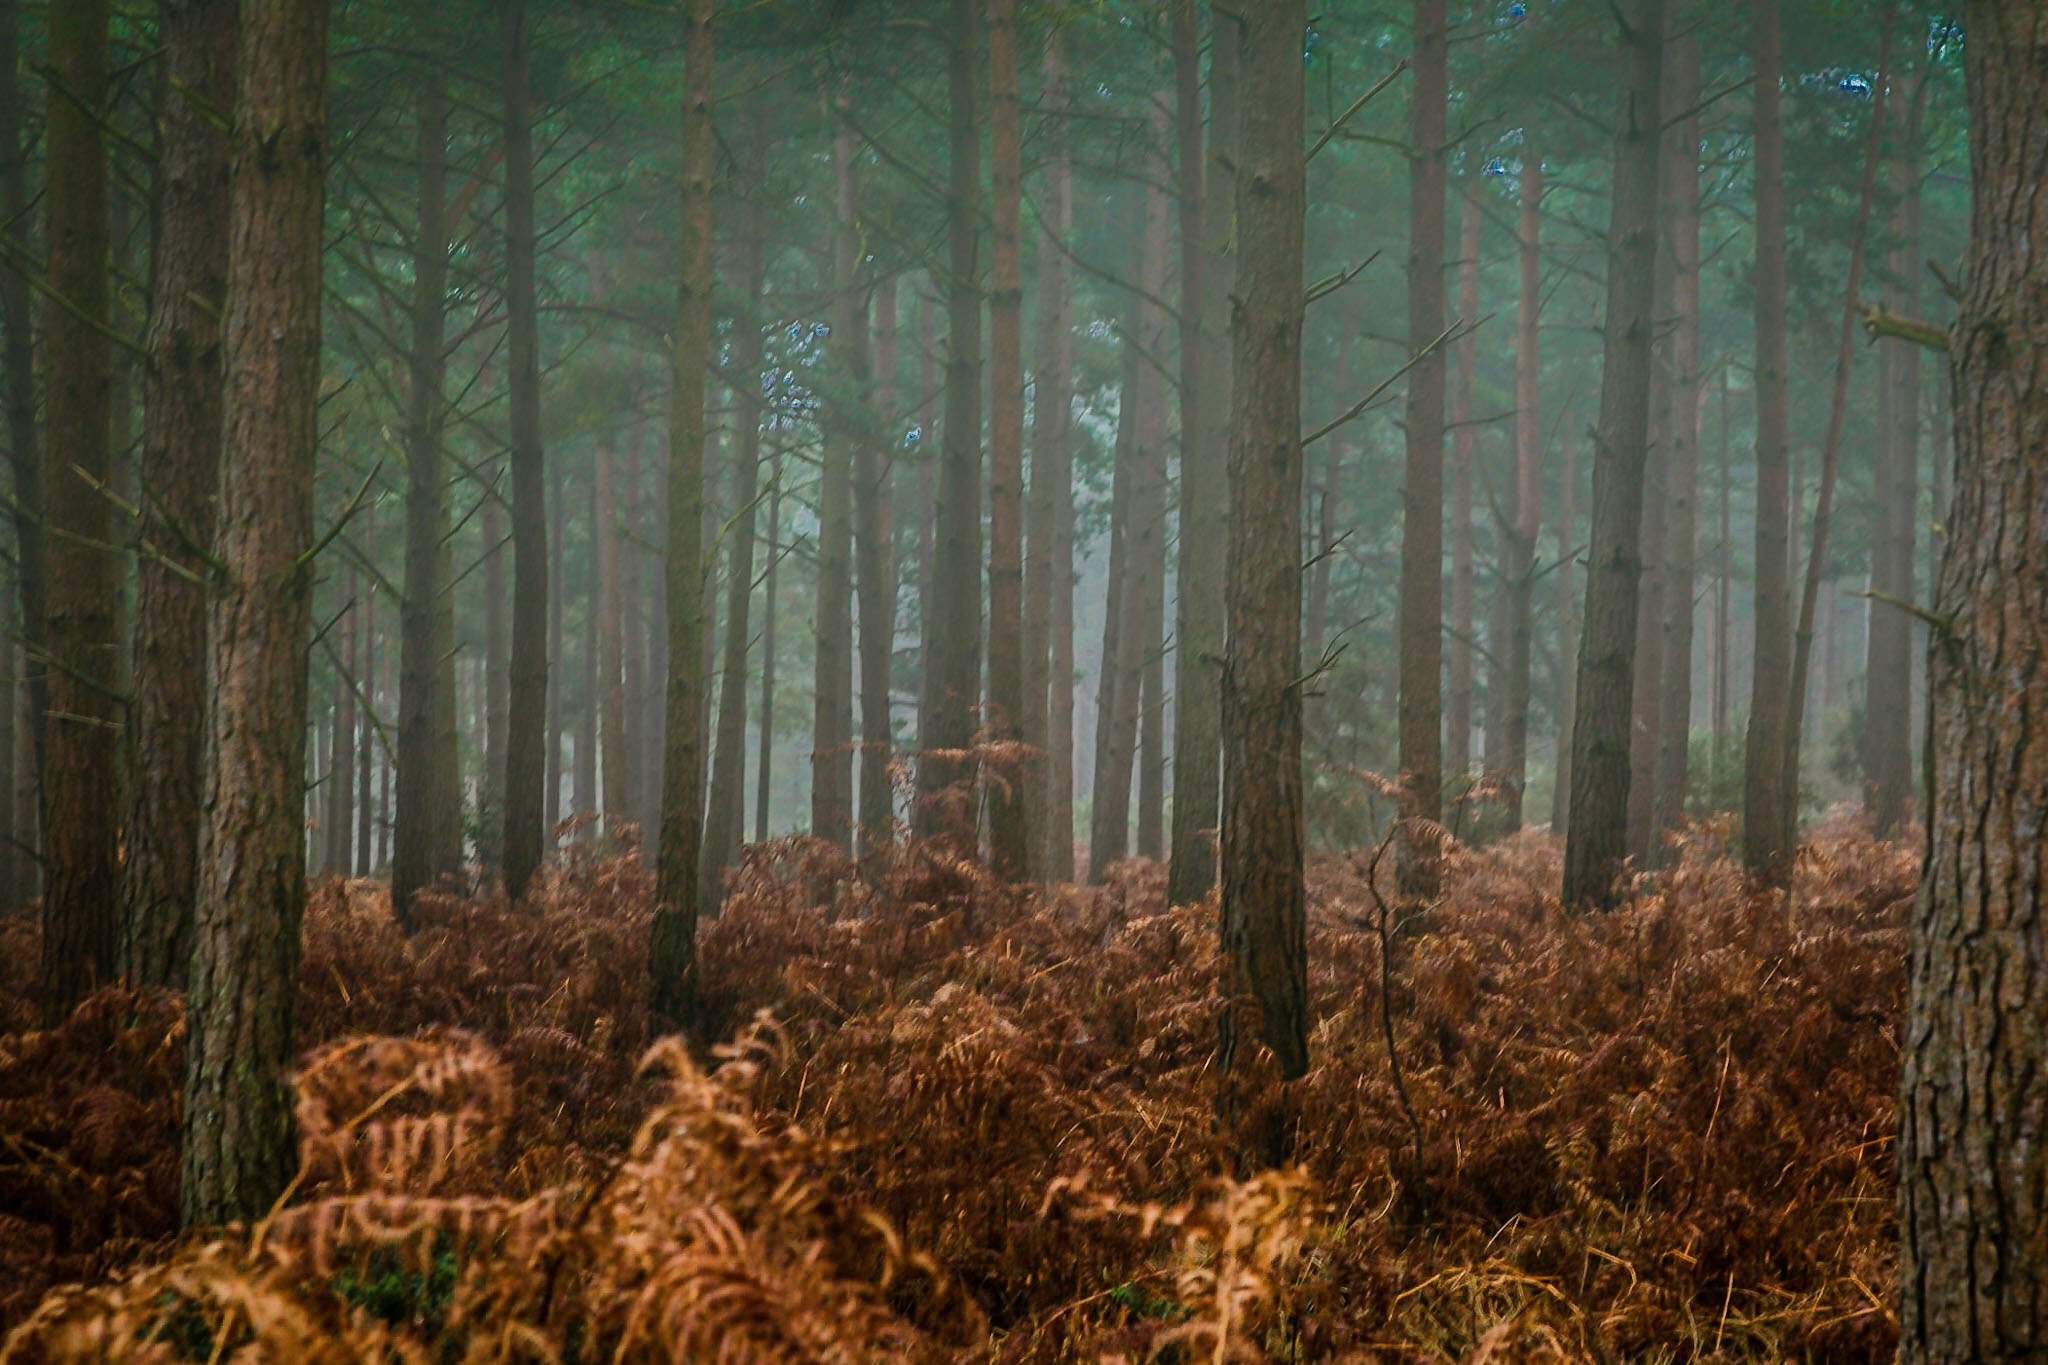 Misty forest scene in Hampshire